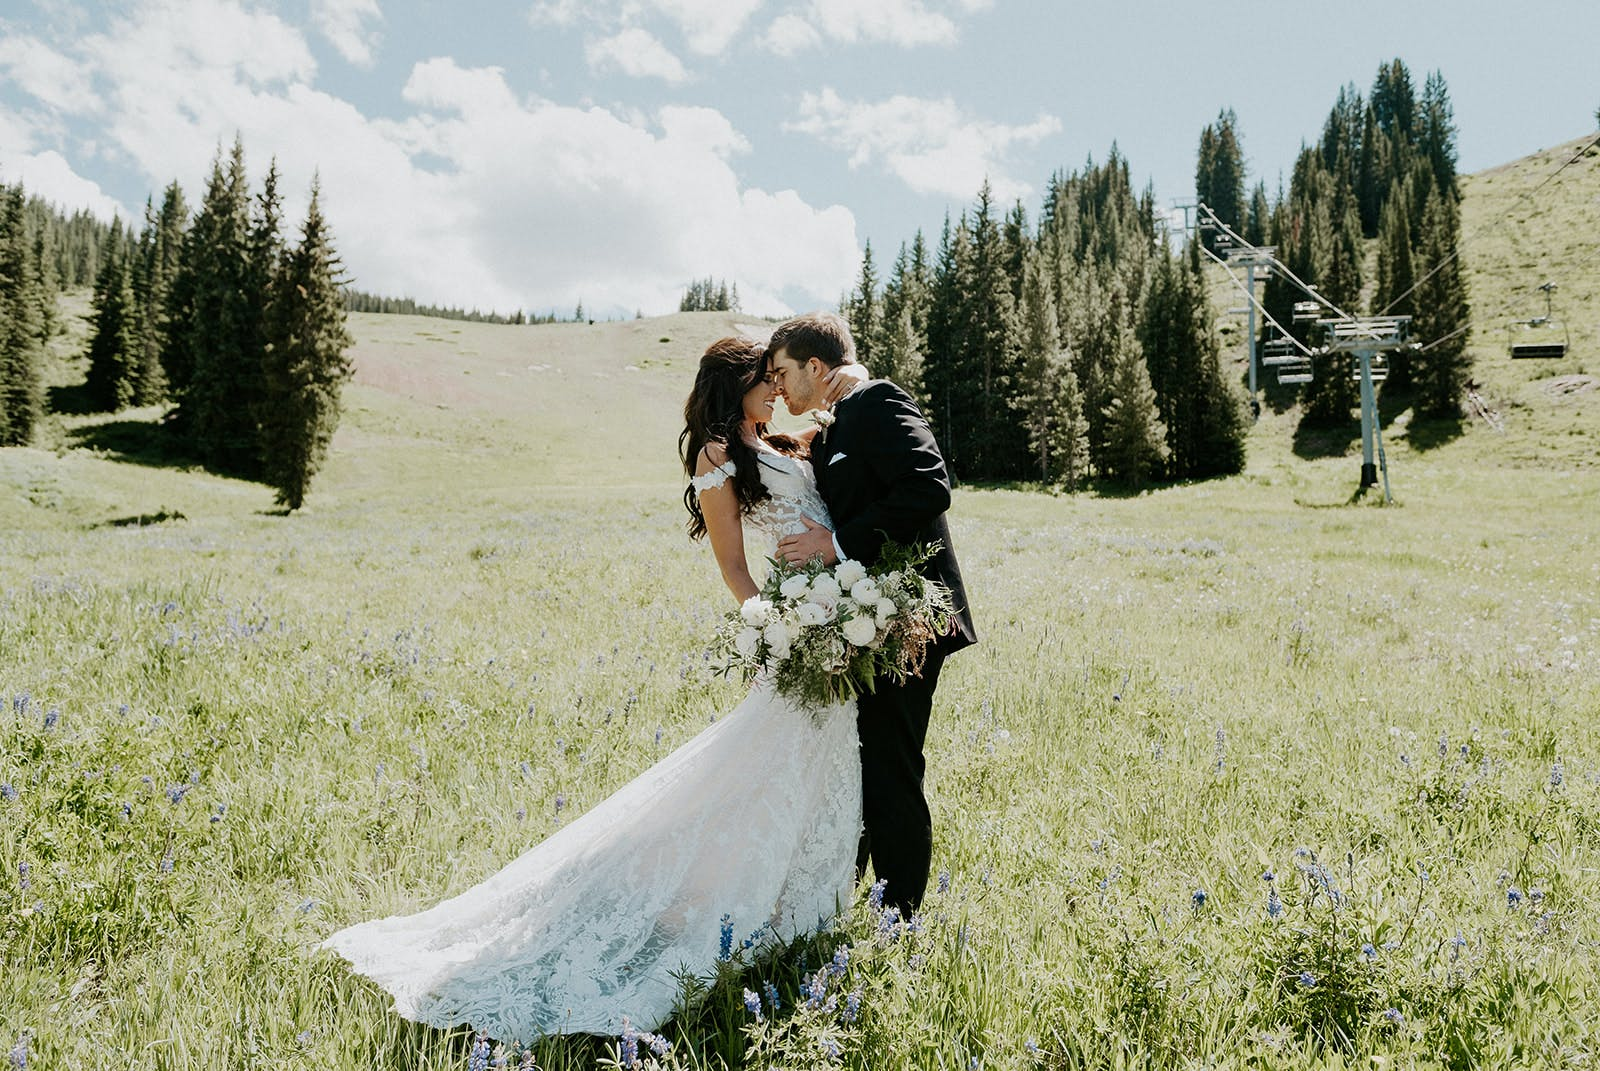 Larkspur Wedding Venue Vail Colorado Mountain Wedding